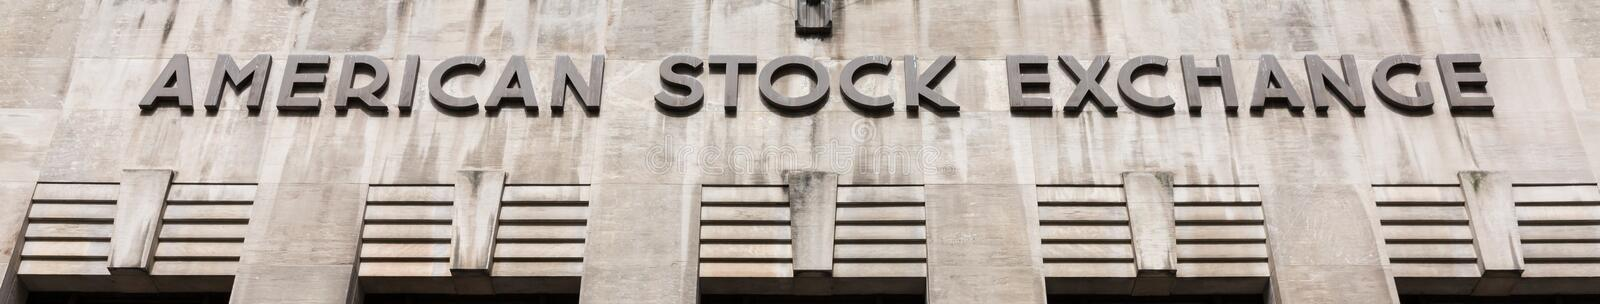 American stock exchange - AMEX. NEW YORK, USA - Apr 28, 2016: American stock exchange AMEX in Lower Manhattan, NYC. Third-largest stock exchange by trading stock photos